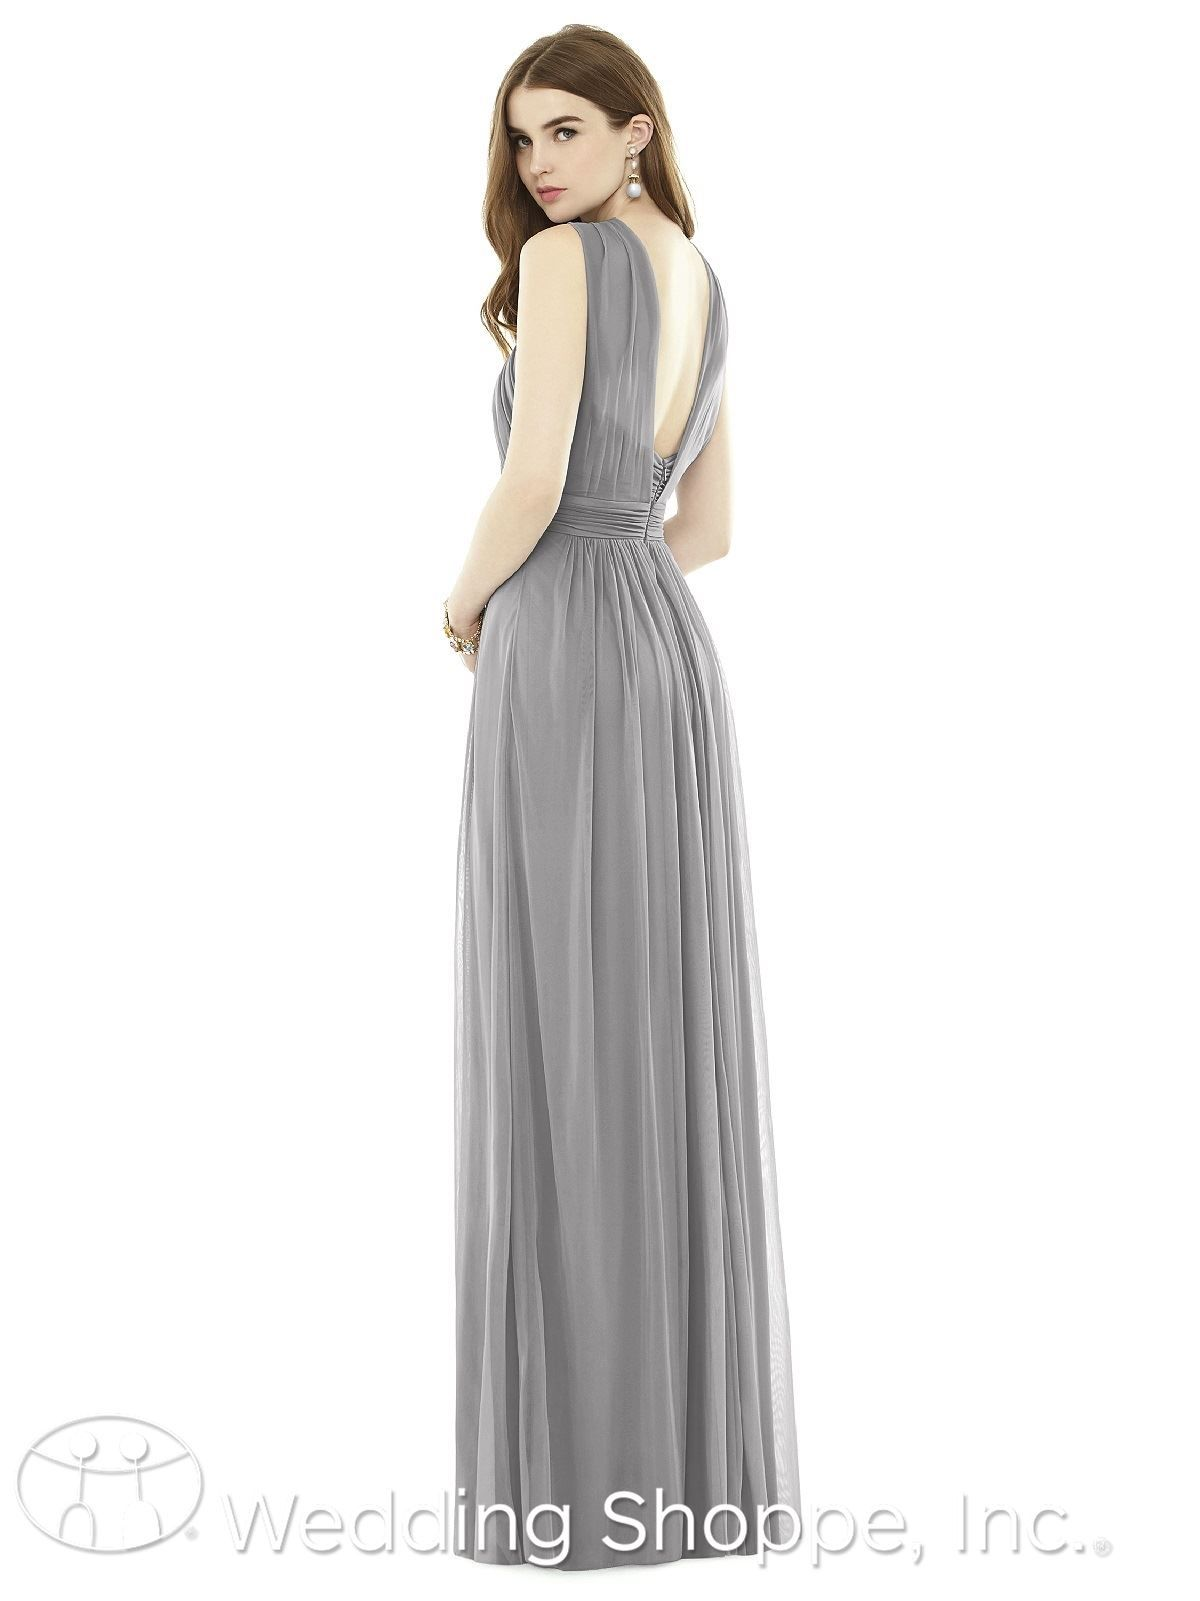 Alfred sung bridesmaid dress the wedding shoppe bridesmaids alfred sung bridesmaid dress the wedding shoppe ombrellifo Images